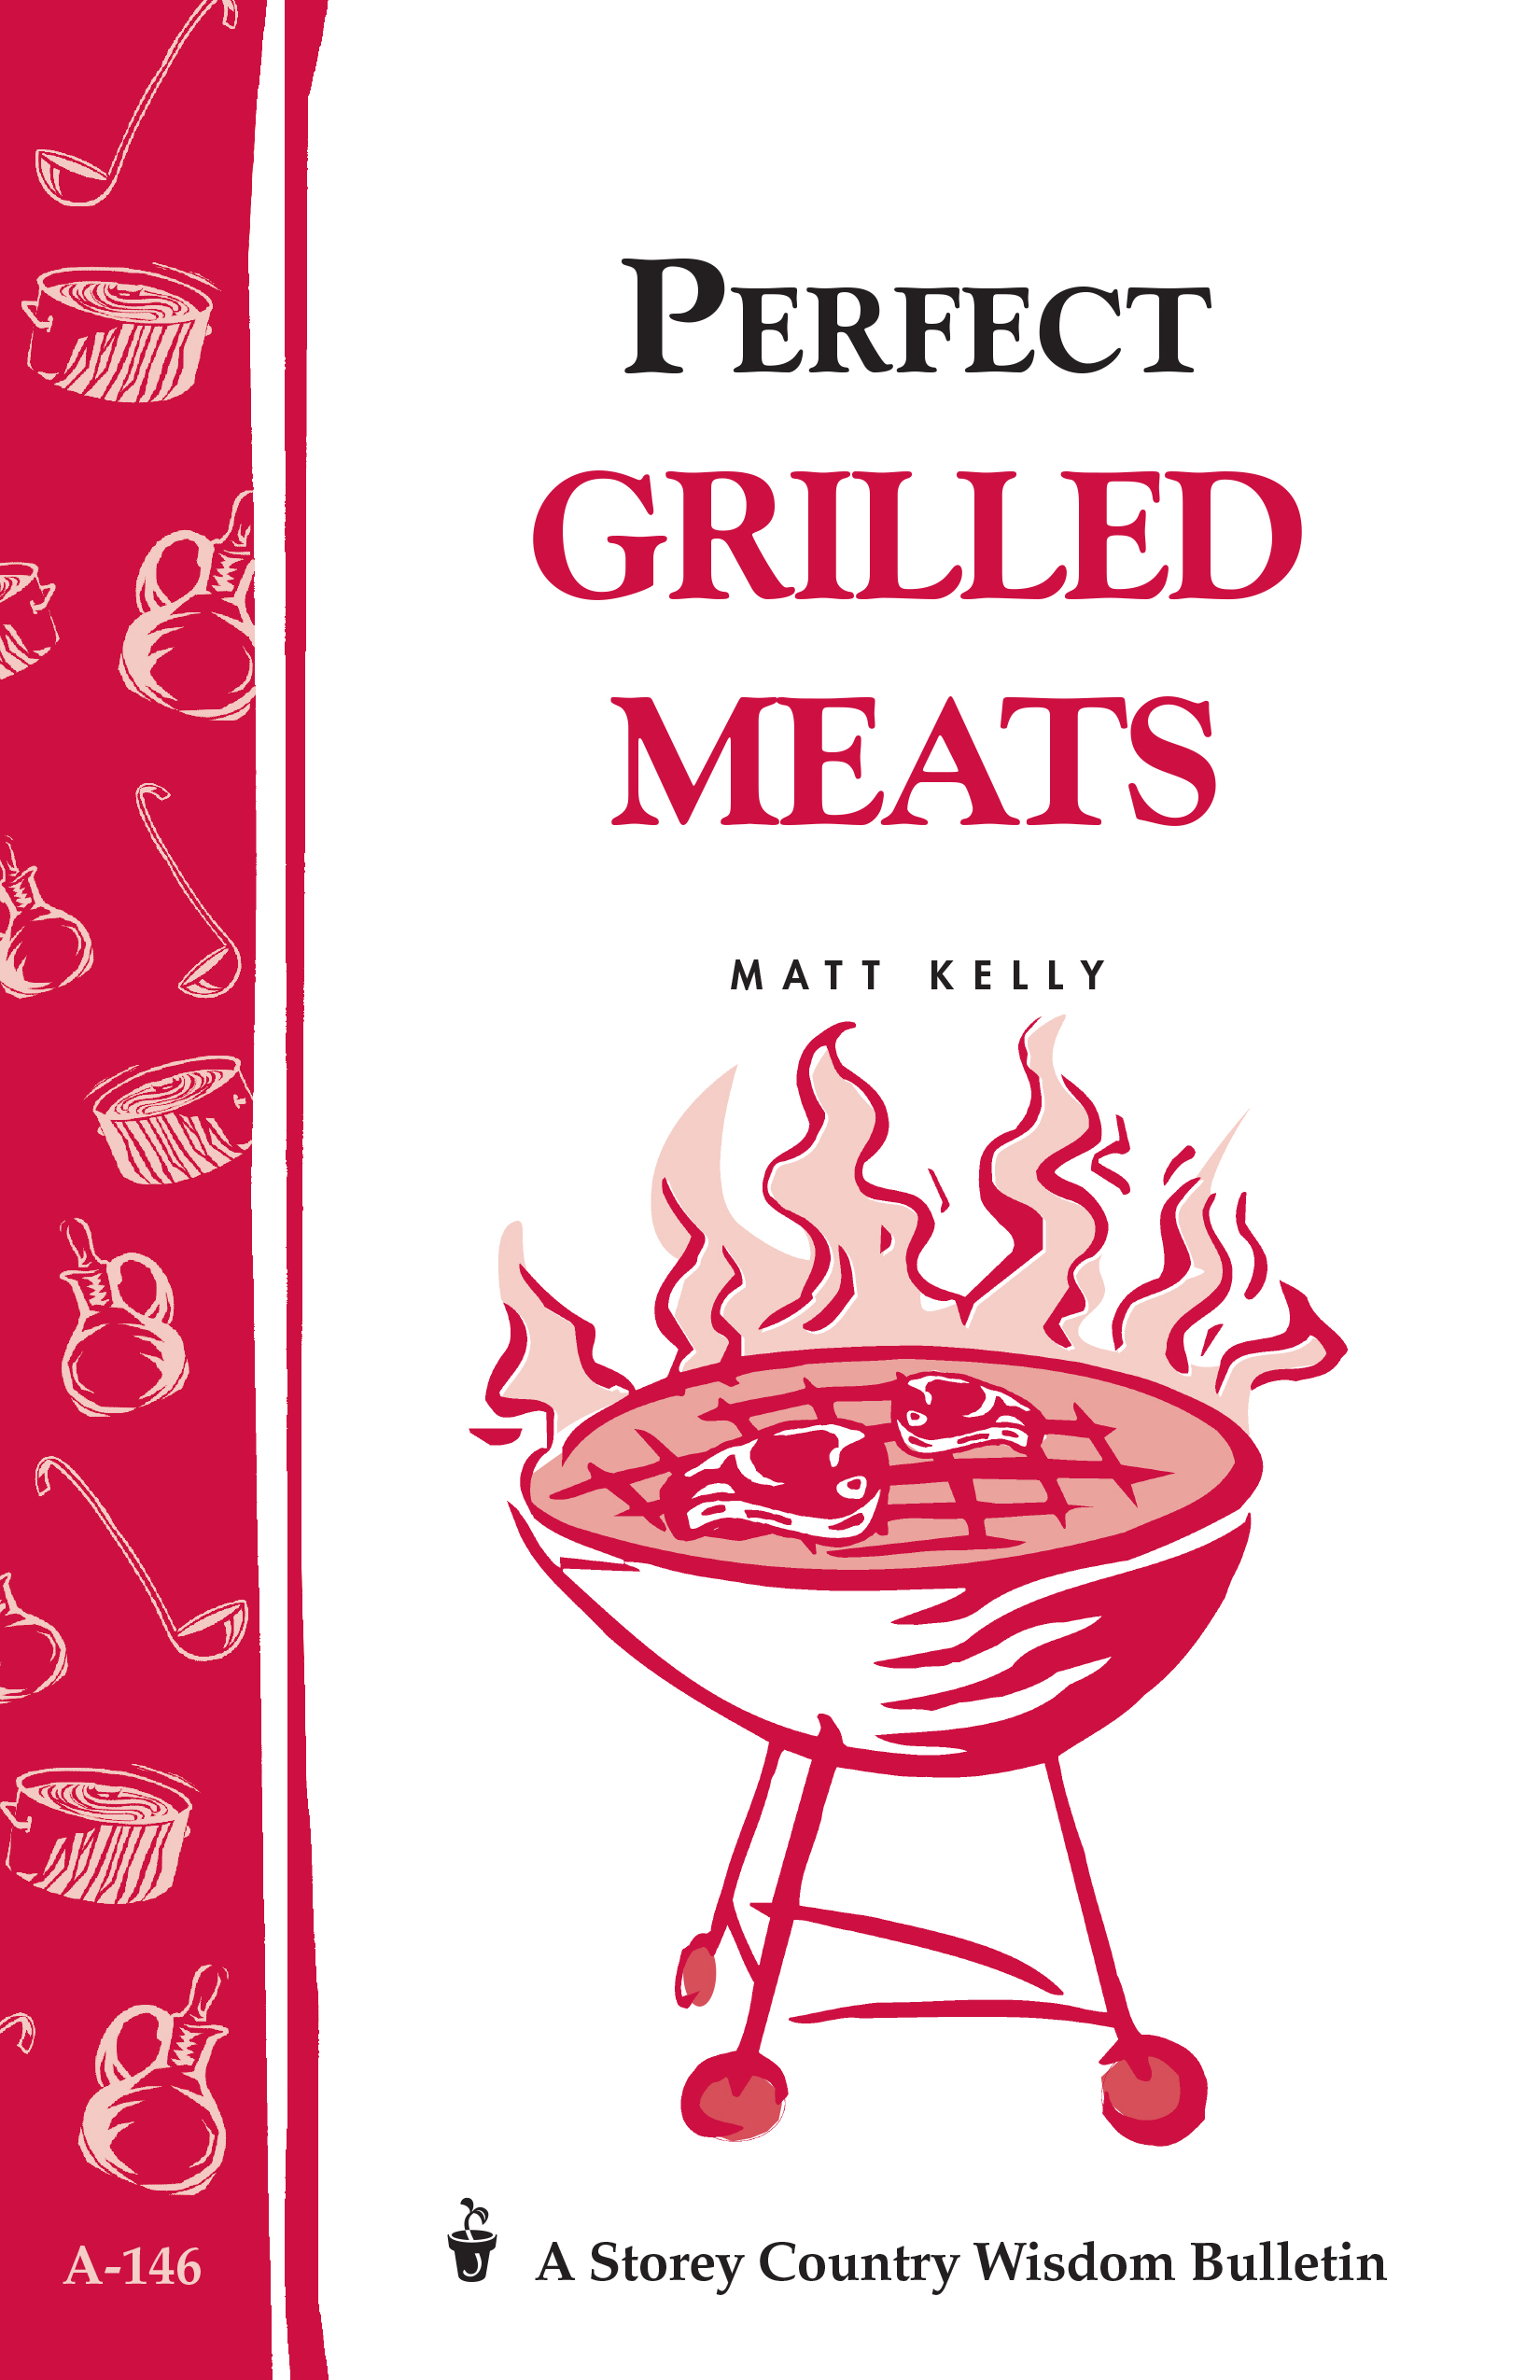 Perfect Grilled Meats Storey's Country Wisdom Bulletin A-146 - Matt Kelly